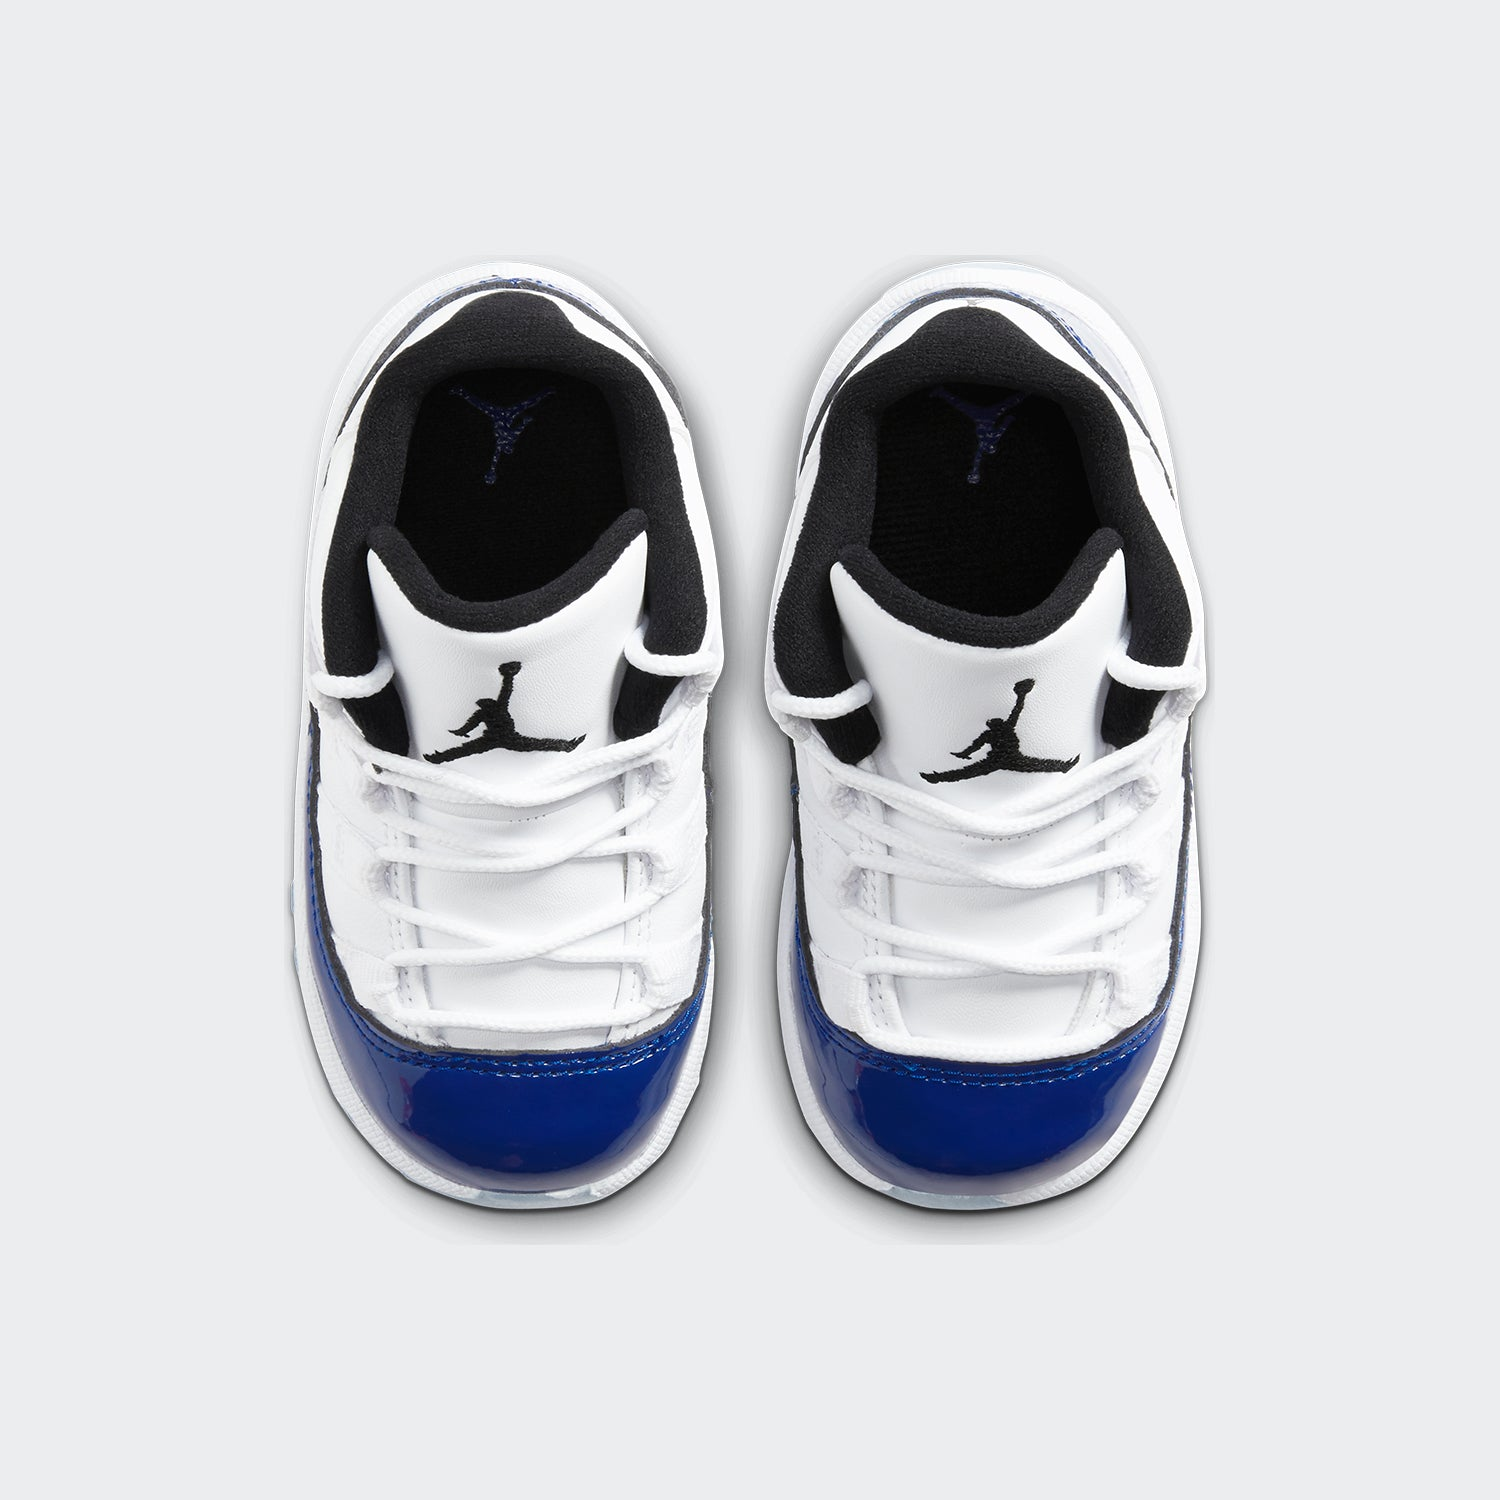 Toddlers Air Jordan 11 Retro Low Td Concord Sketch Chicago